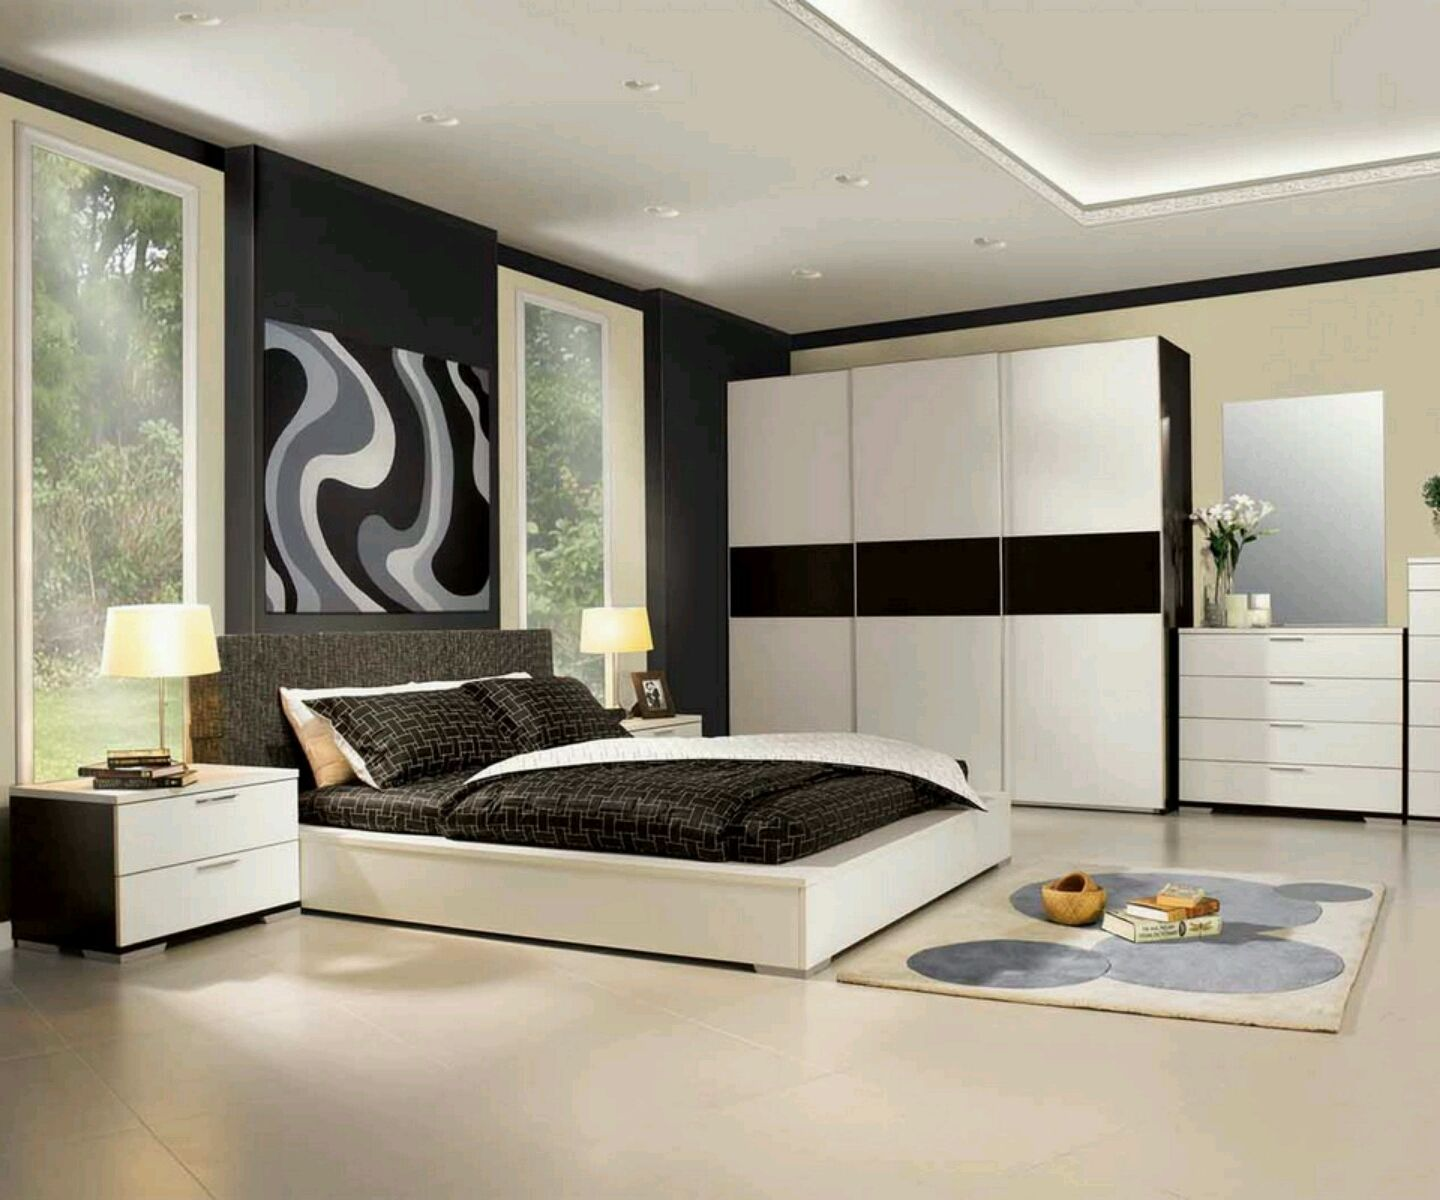 Home Furniture Designs Stunning Modern Bedroom Furniture Design For More Pictures And Design Ideas . 2017